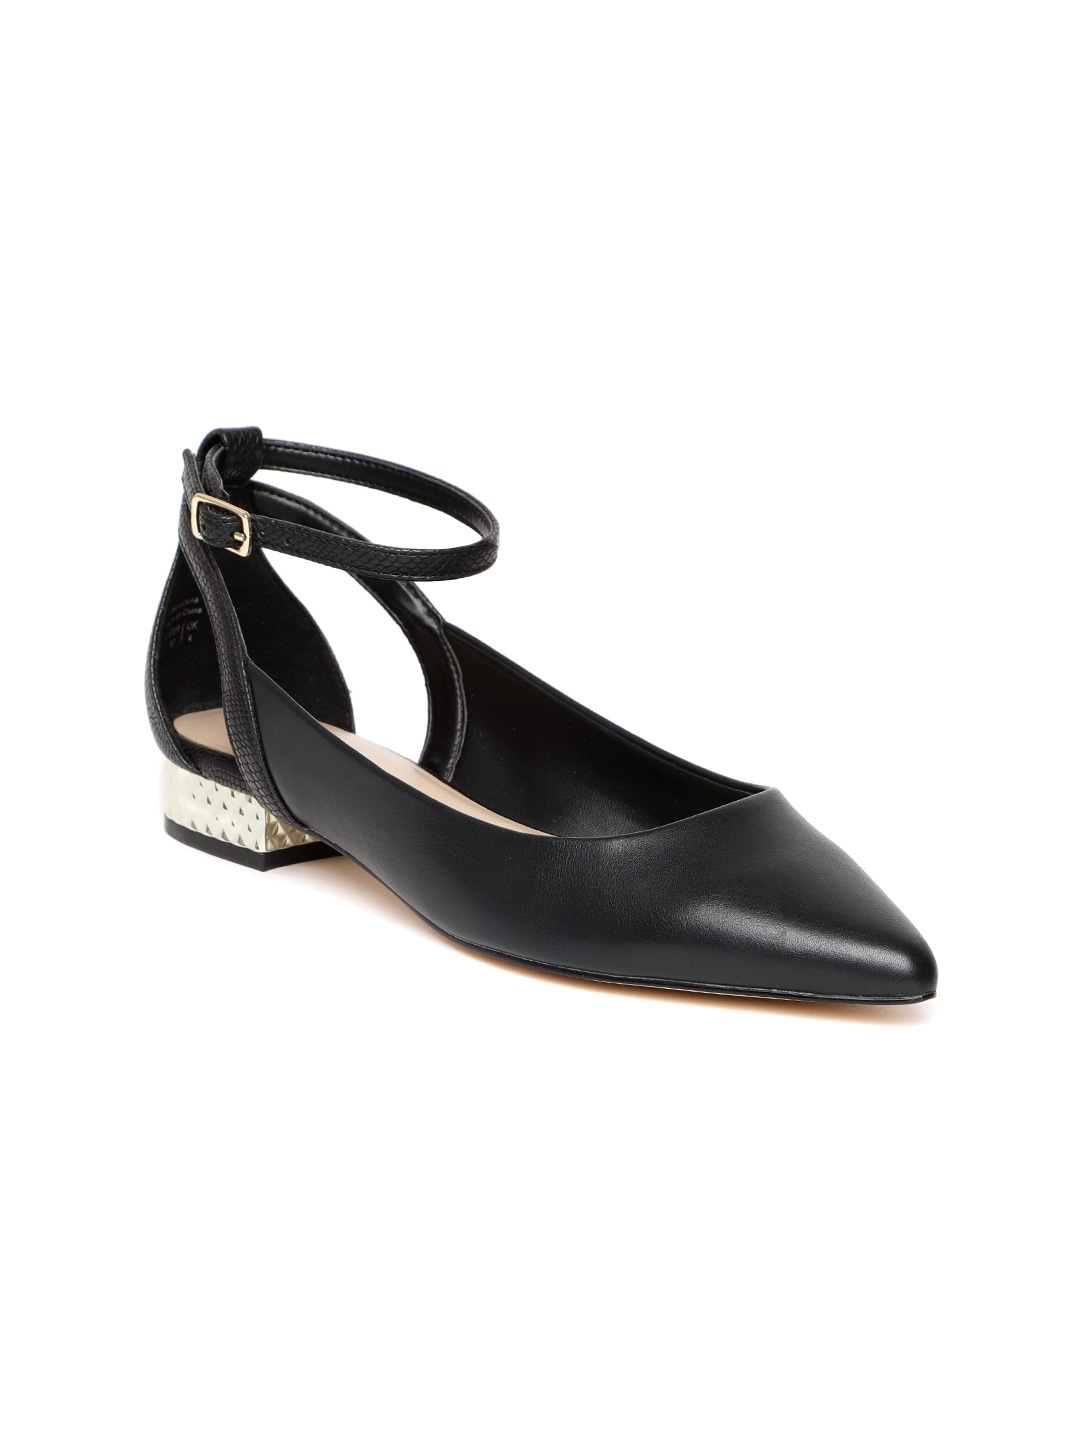 7876f3ce4fd ALDO Shoes - Buy Shoes from ALDO Online Store in India